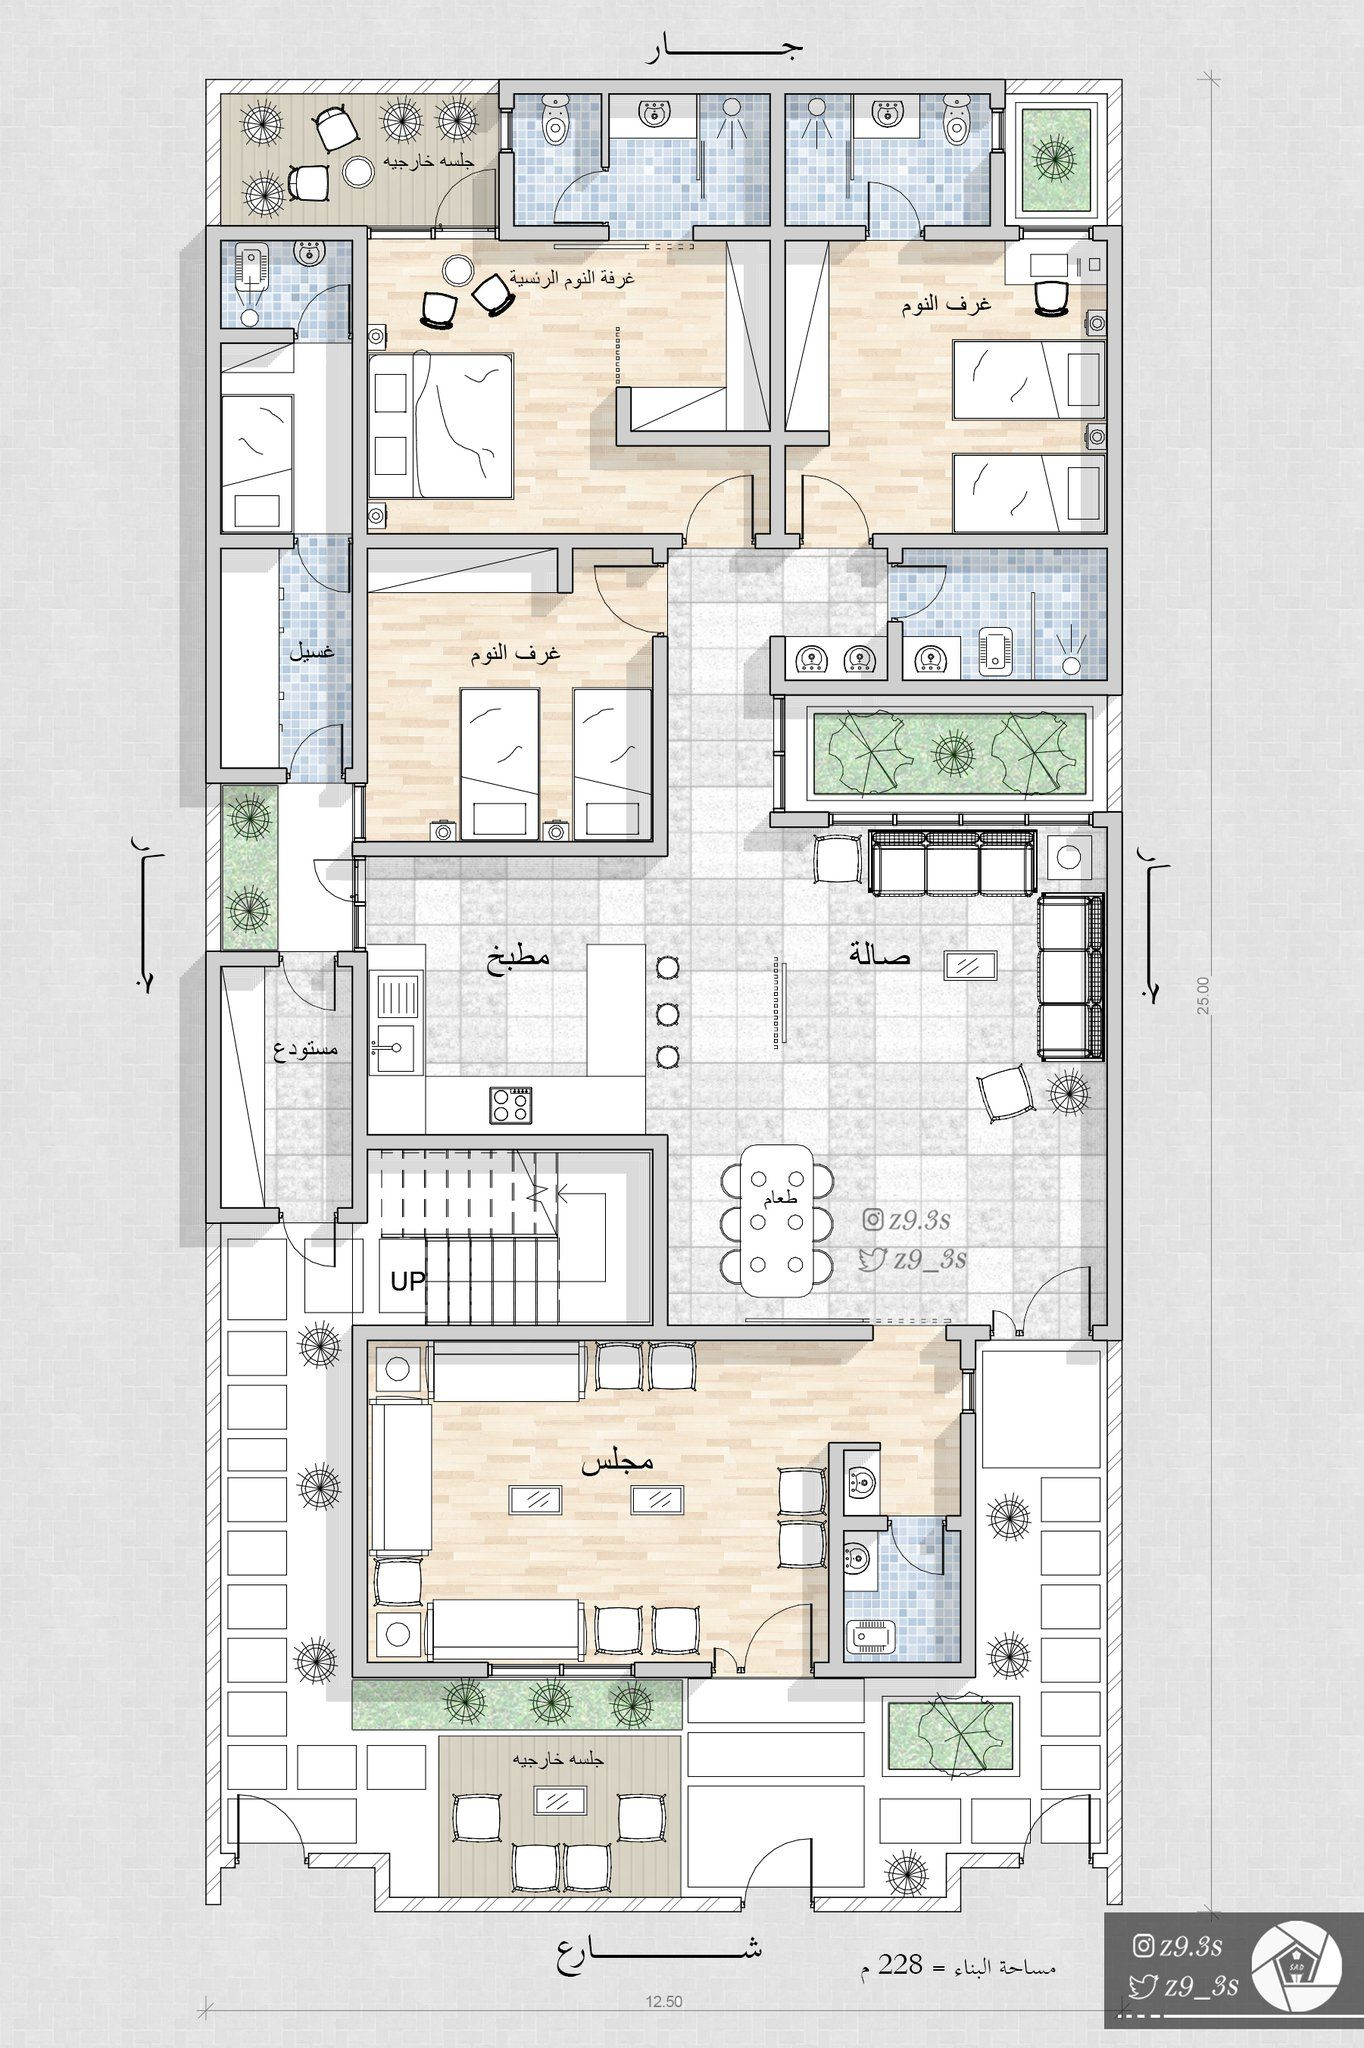 Pin By Abdulkhaliq On Housing Family House Plans New House Plans Architecture House